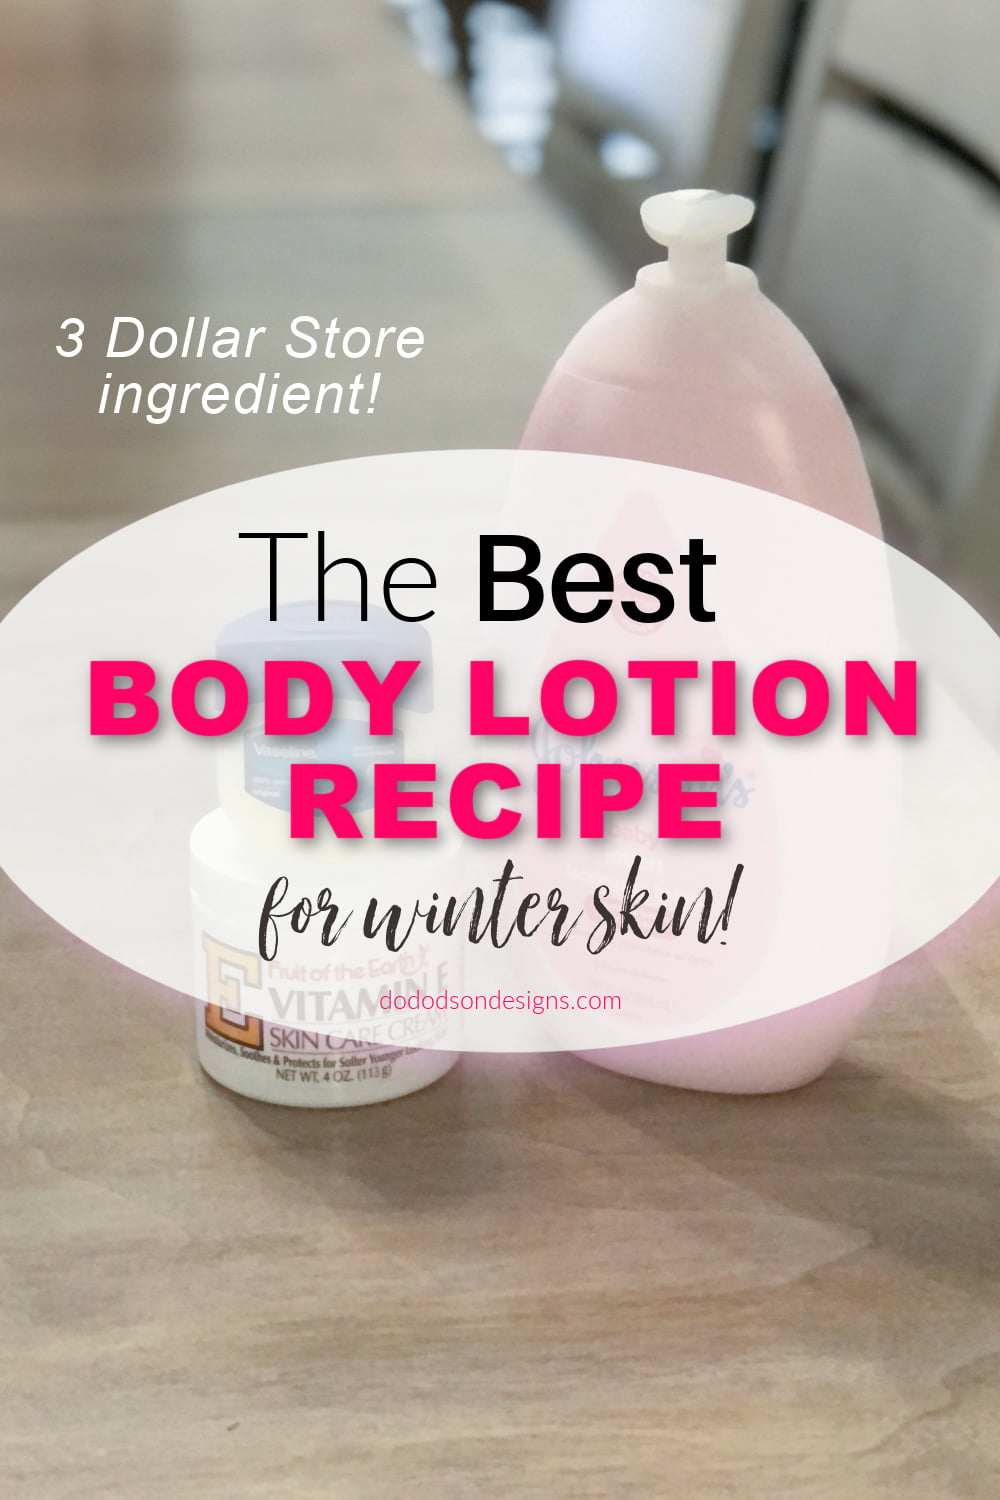 The BEST Body Lotion Recipe For Winter Skin